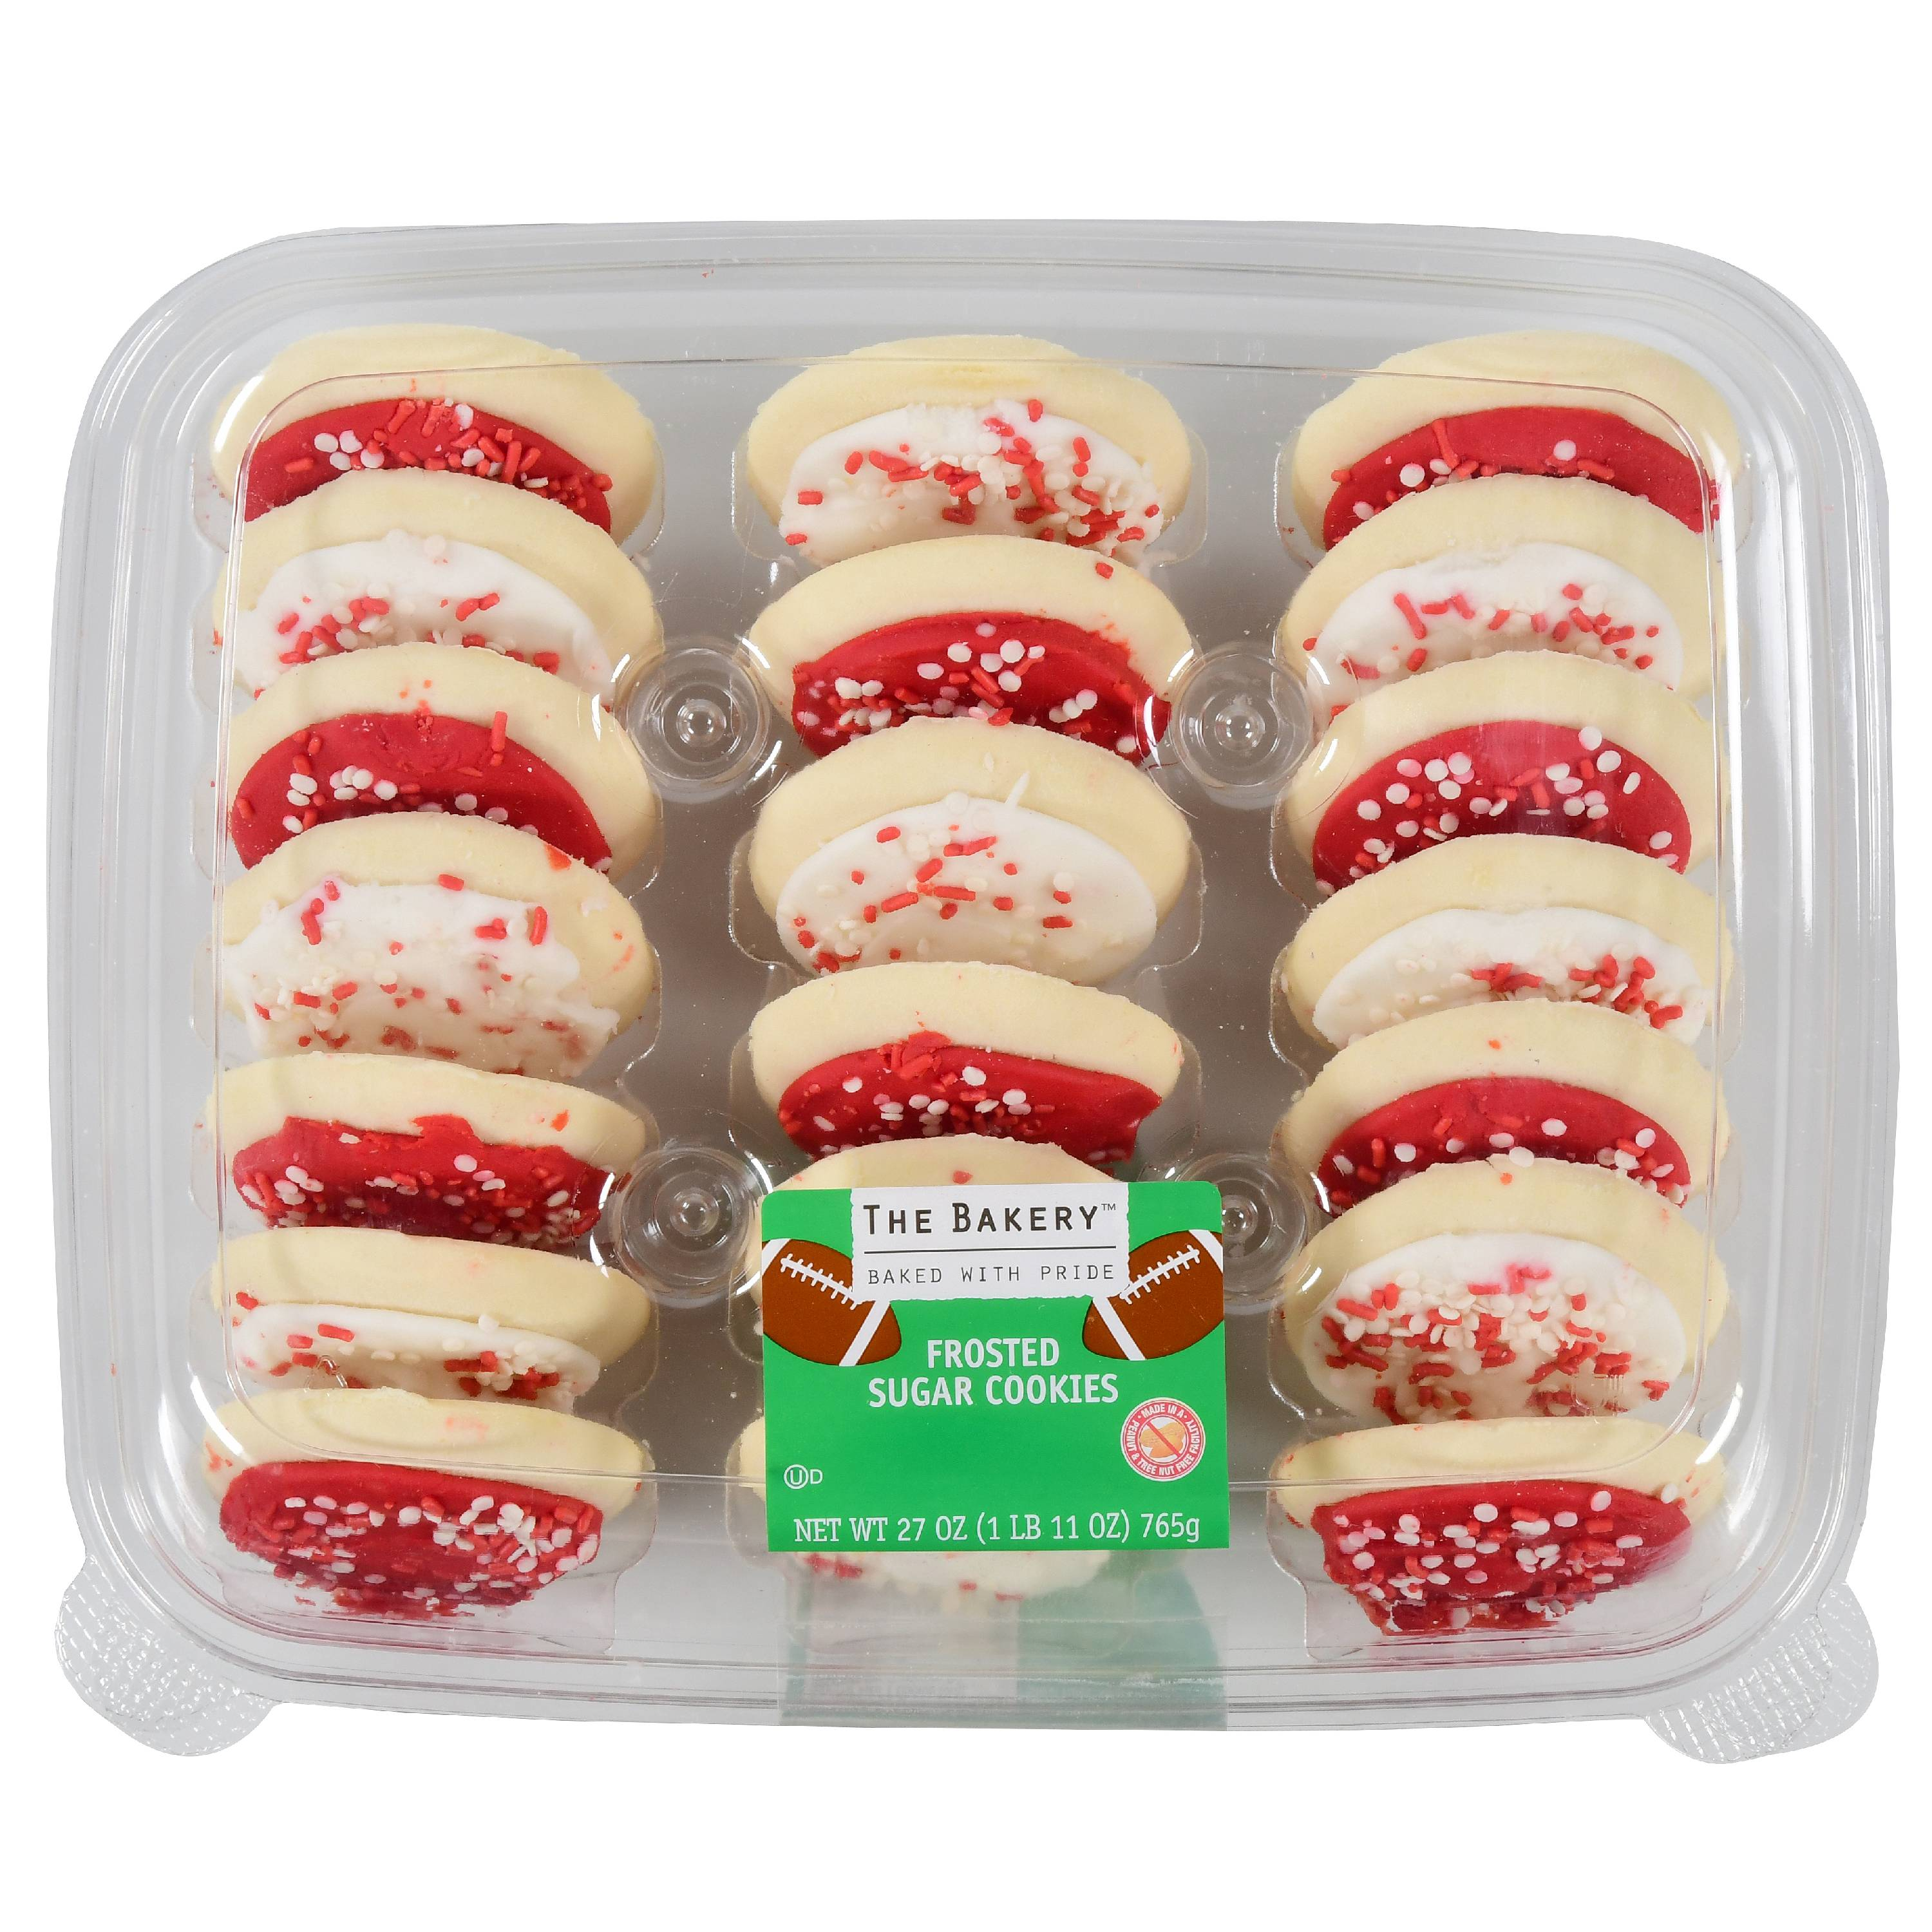 The Bakery Red & White Game Time Frosted Sugar Cookies, 20 Count